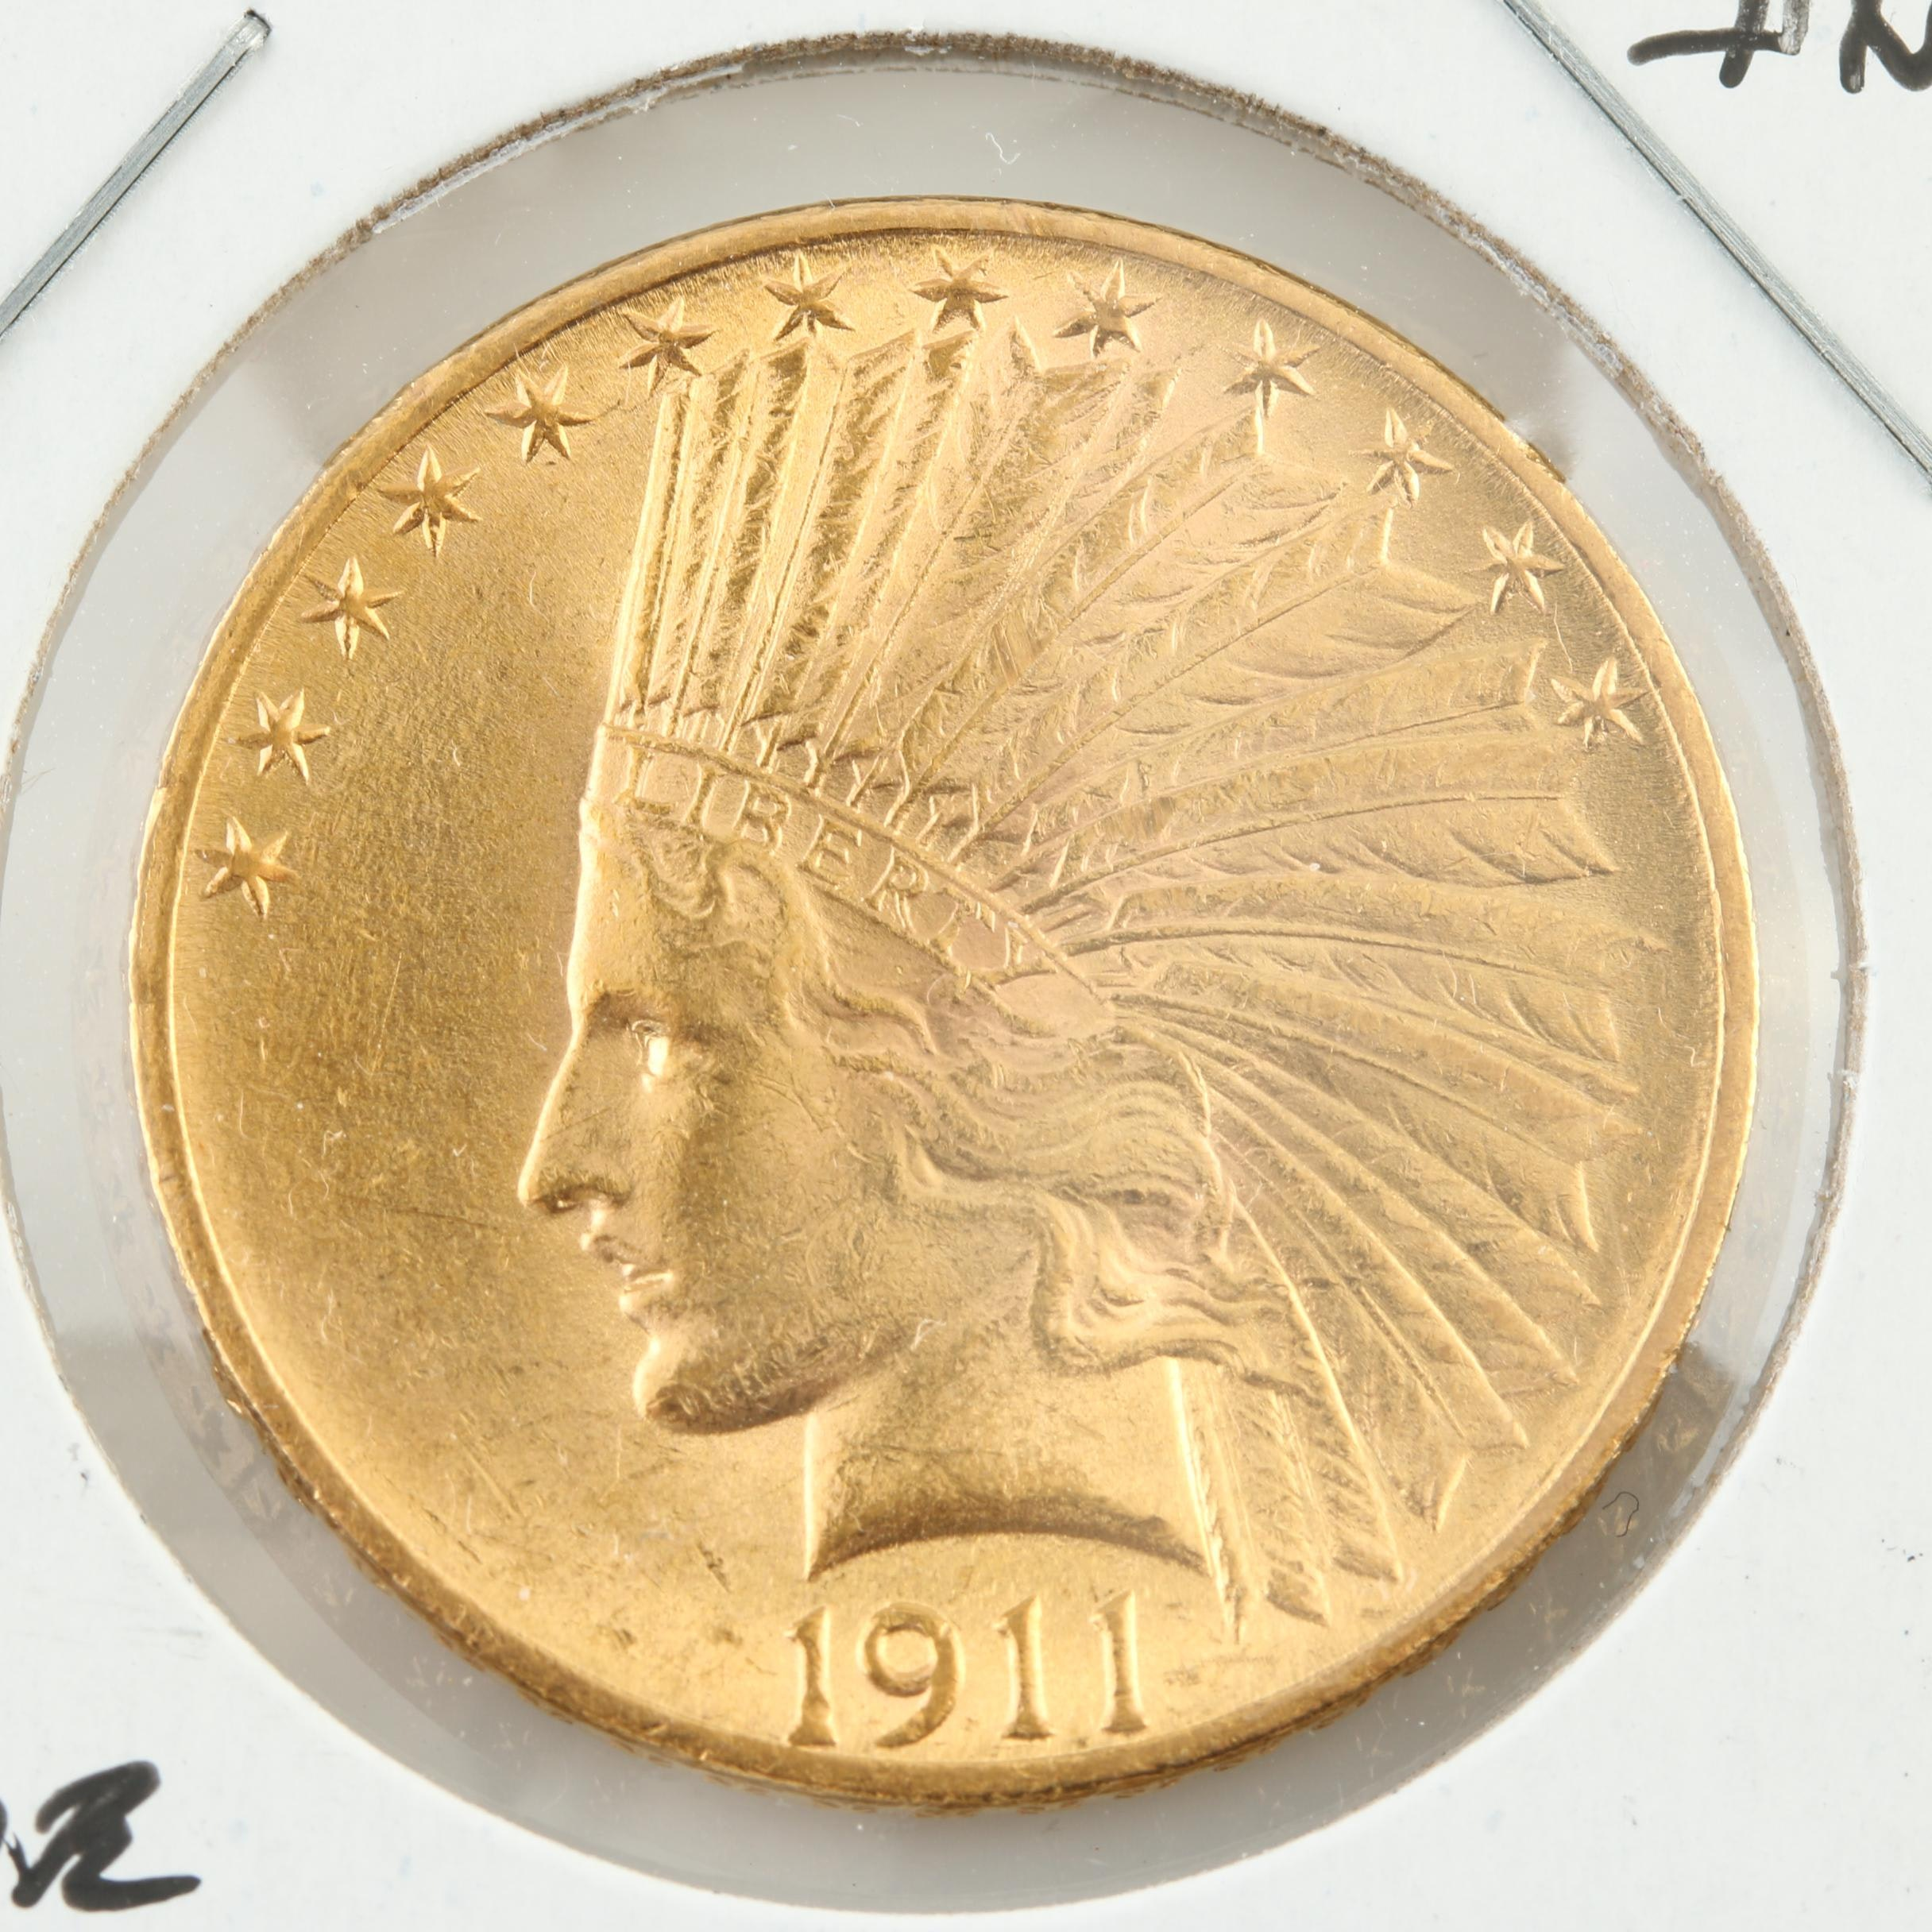 1911 Indian Head $10 Gold Coin